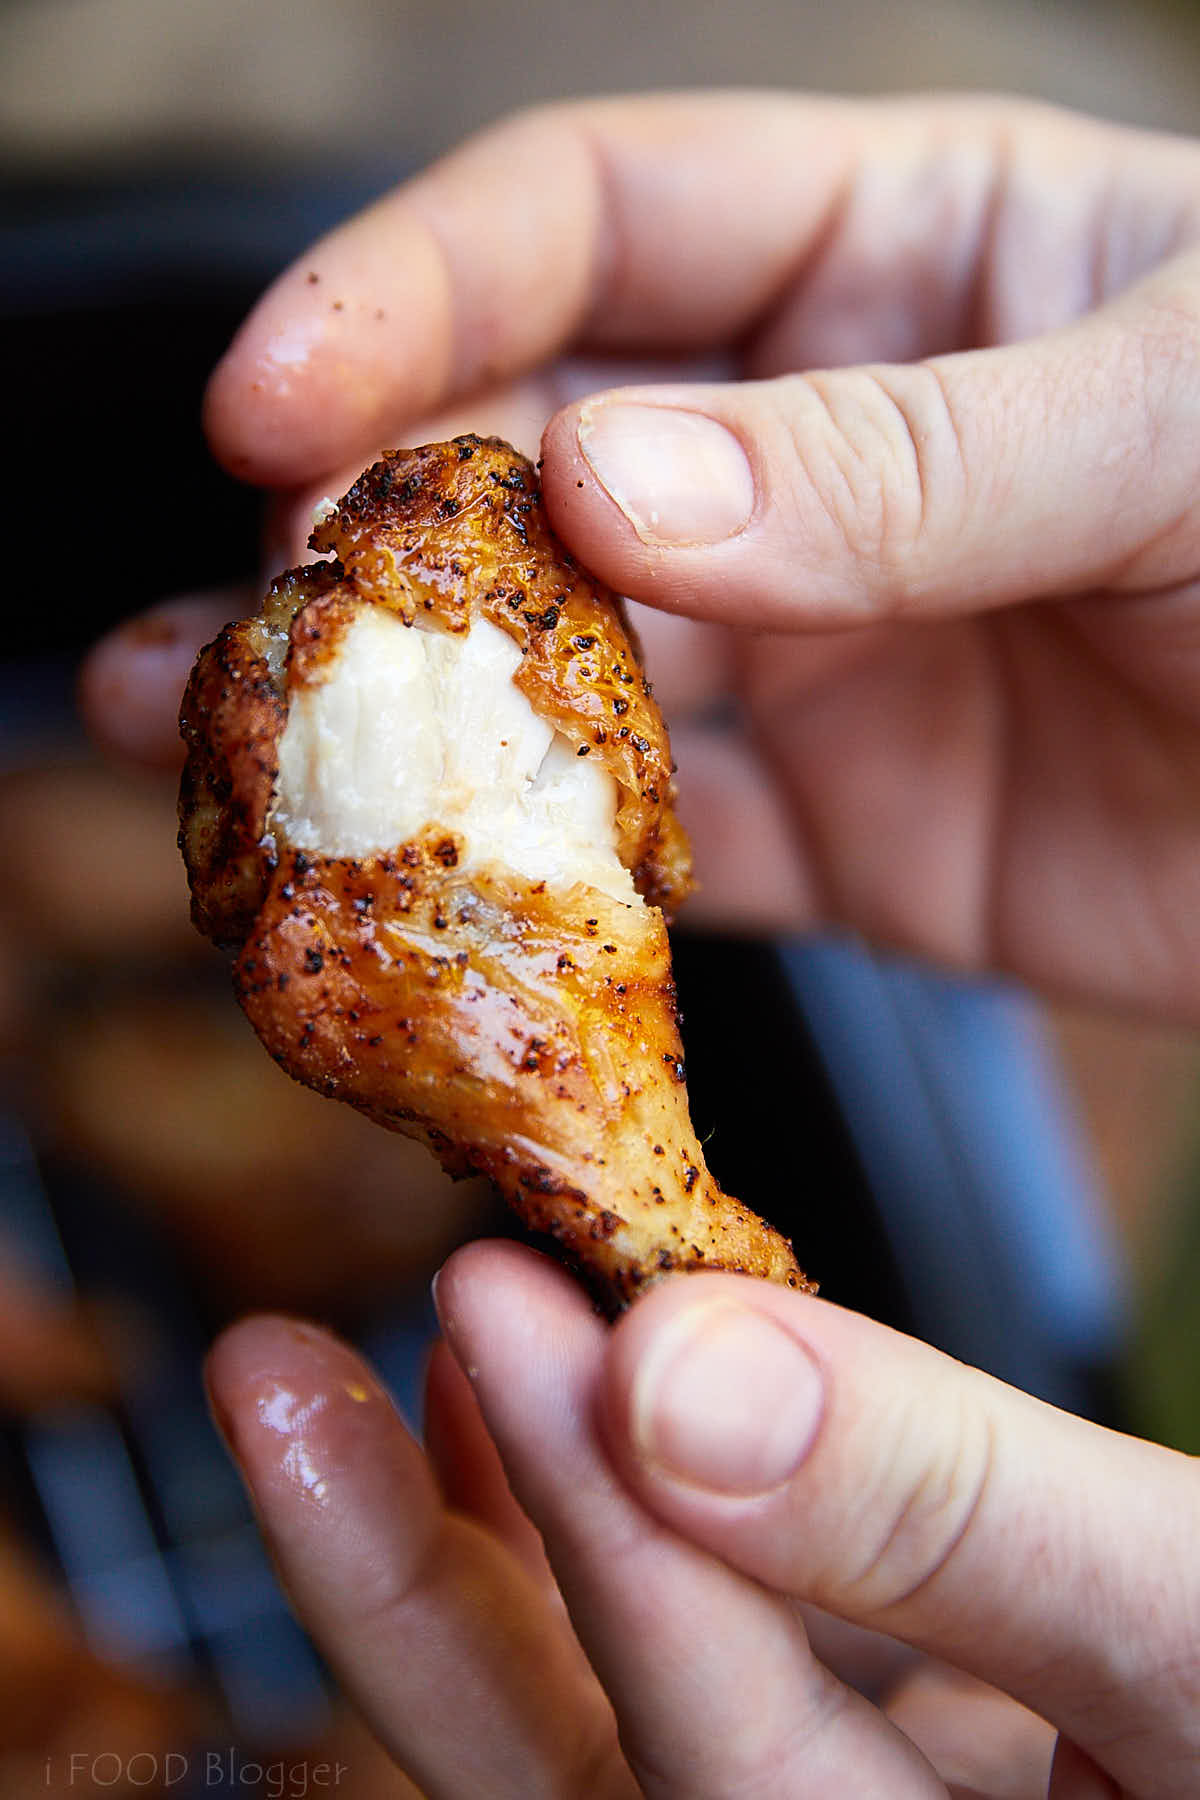 Close up of an air fried chicken wing, split open, showing juicy and moist meat under crispy skin.